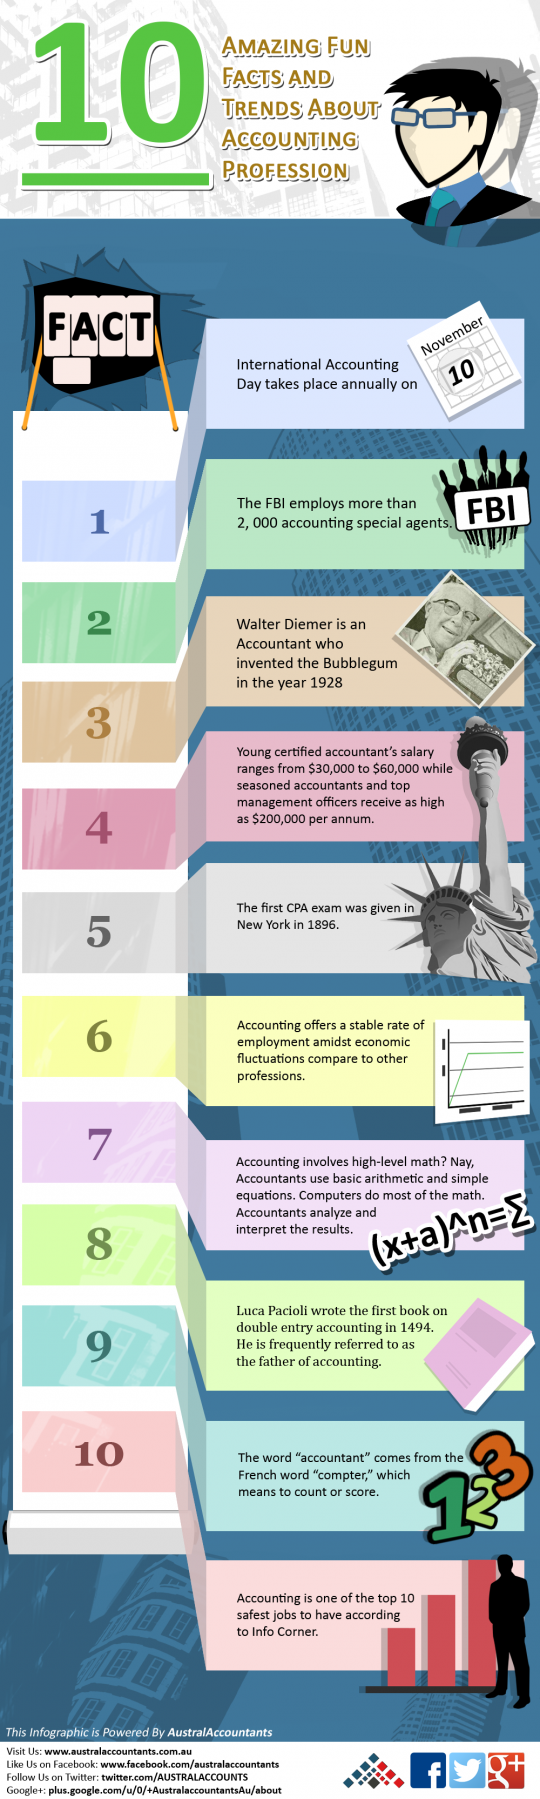 10 Amazing Fun Facts and Trends About Accounting Profession